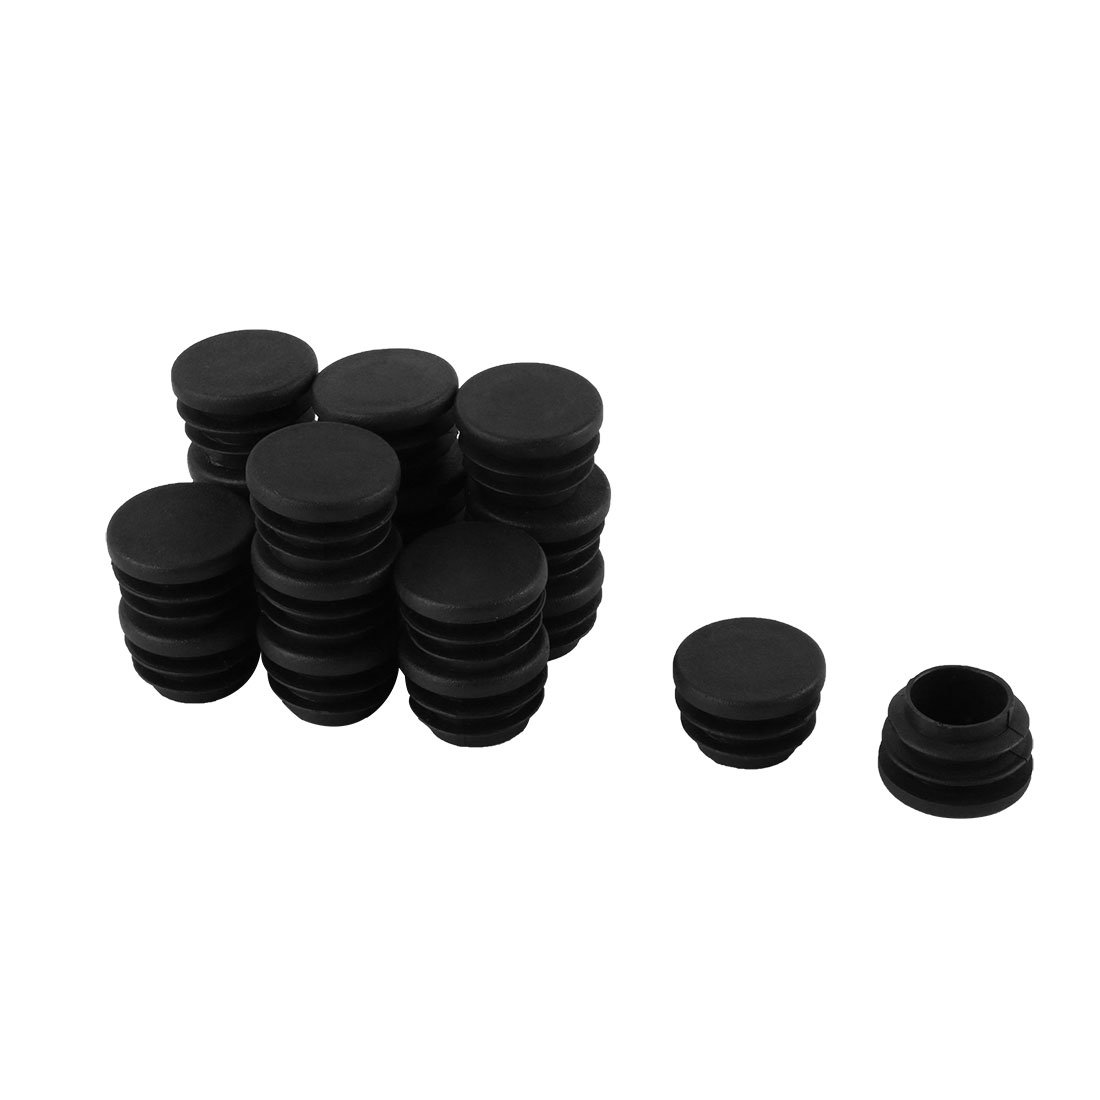 Black Plastic 25mm Dia Blanking End Cap Round Pipe Tube Insert 18pcs SourcingMap a15031000ux0186